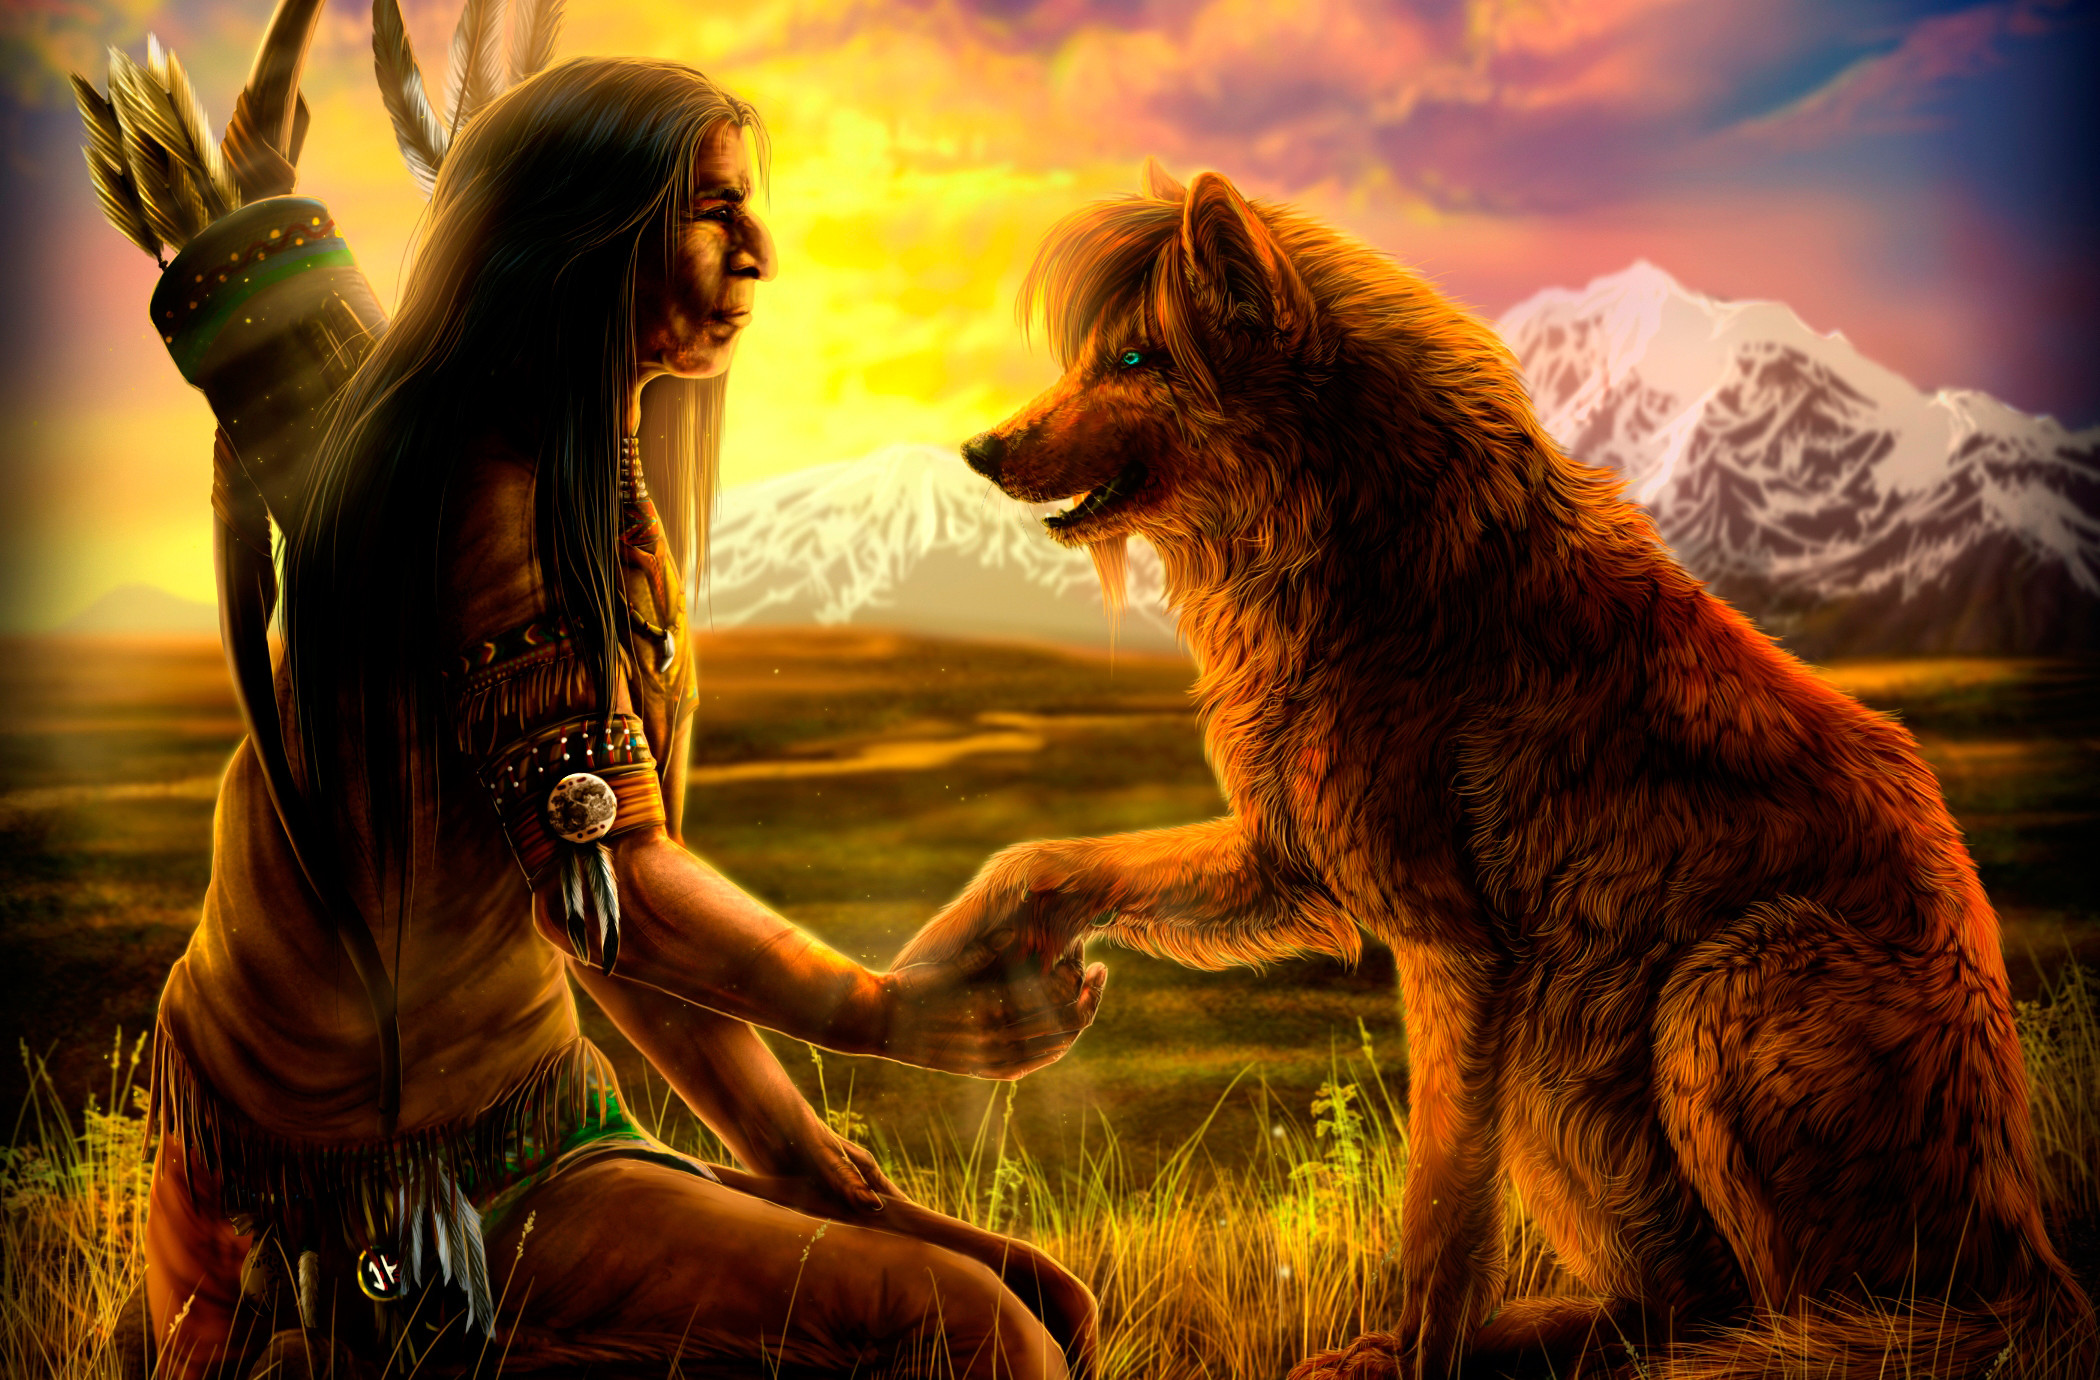 2100x1380 native american wolf art, Native with Wolf wallpaper - ForWallpaper .